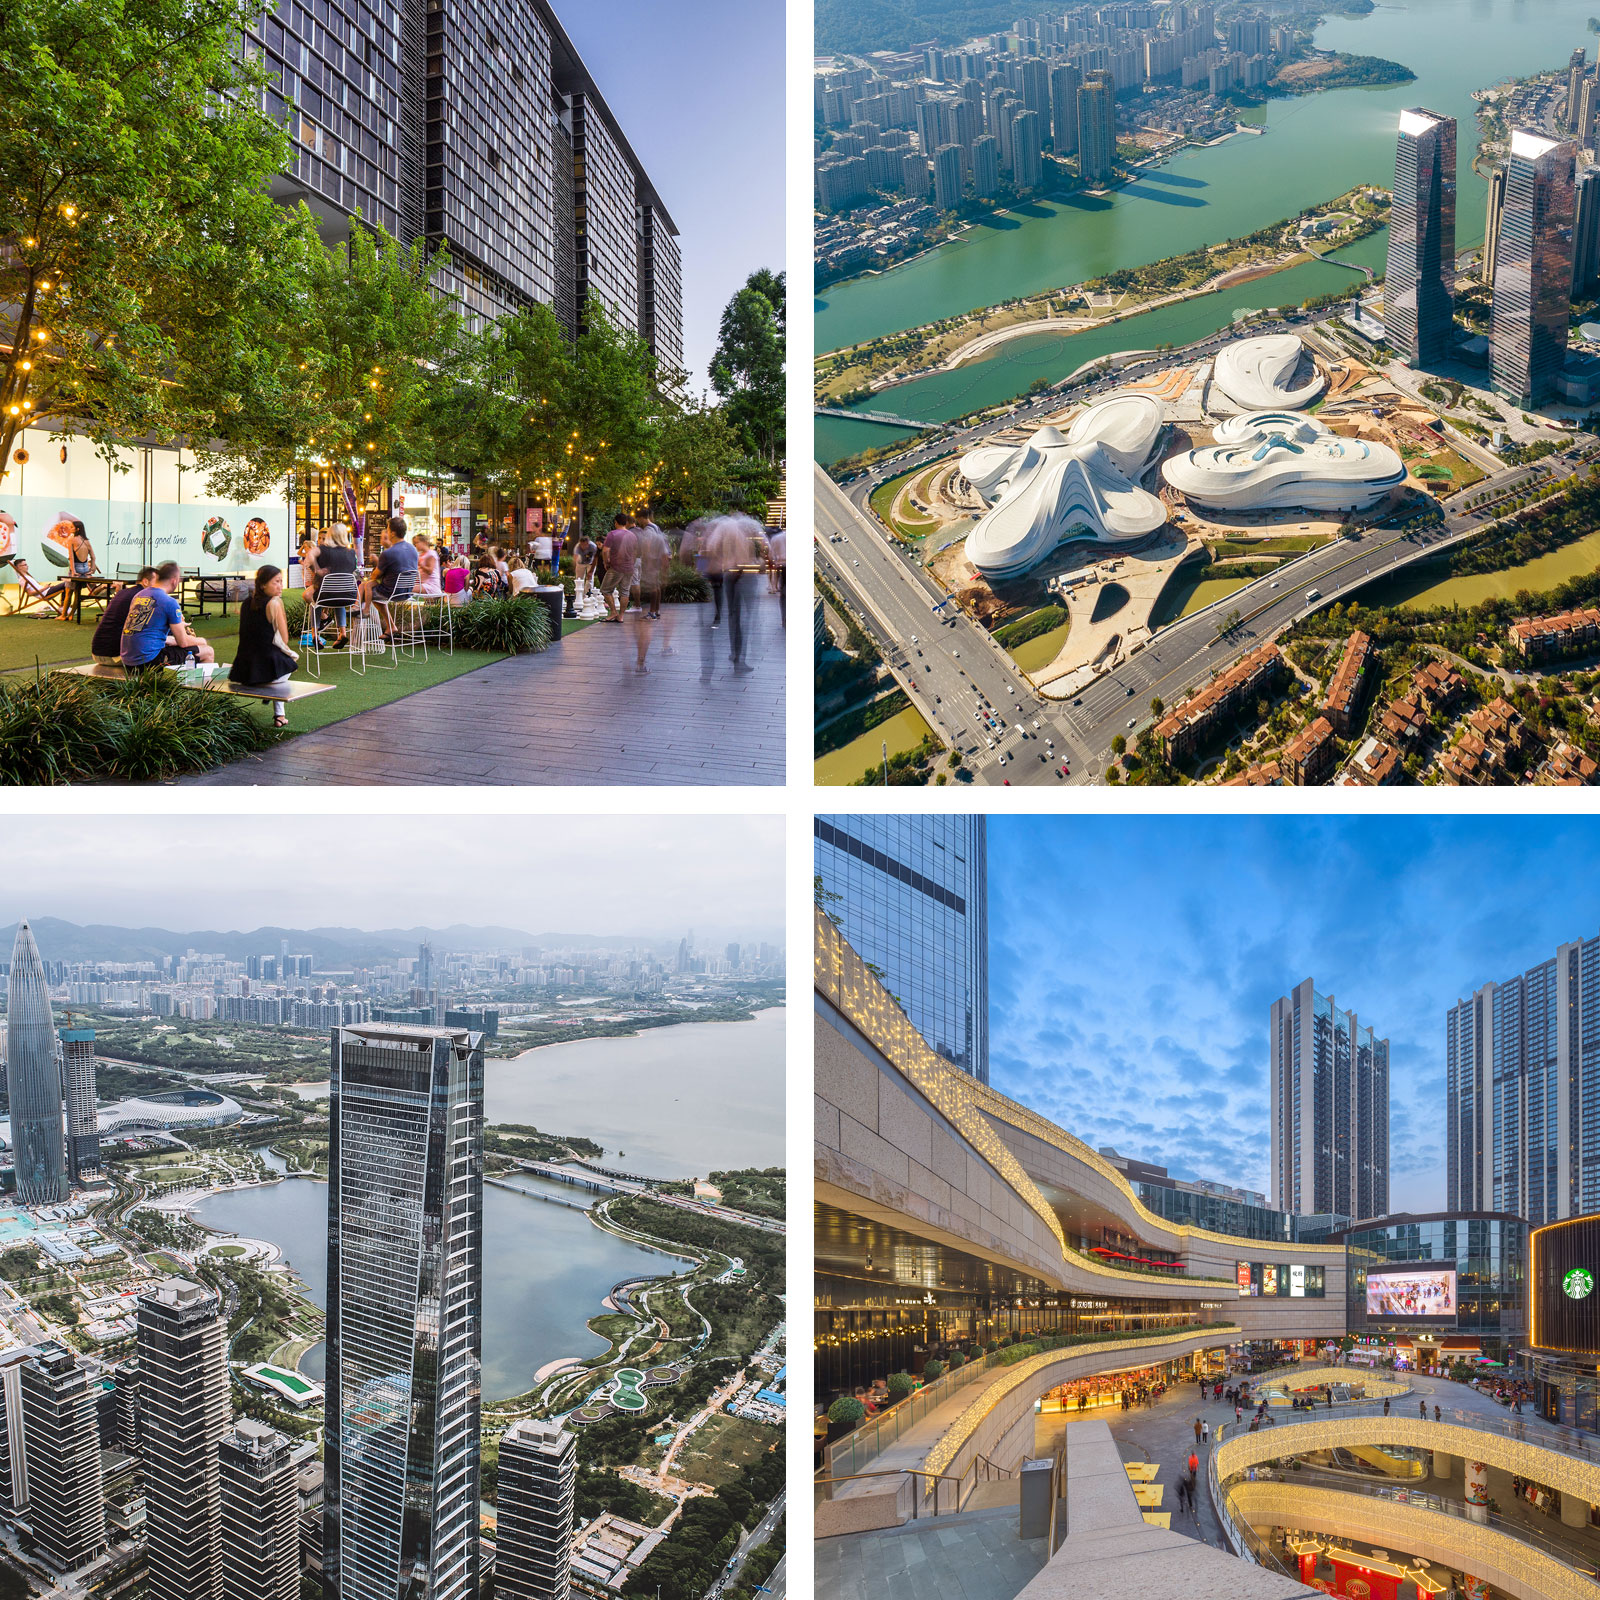 Central Park - Sydney (top left), Changsha Jinmao Meixi Lake Int Plaza - Changsha (top right), One Shenzhen Bay - Shenzhen (bottom left), UNI-Center - Shenzhen (bottom right).